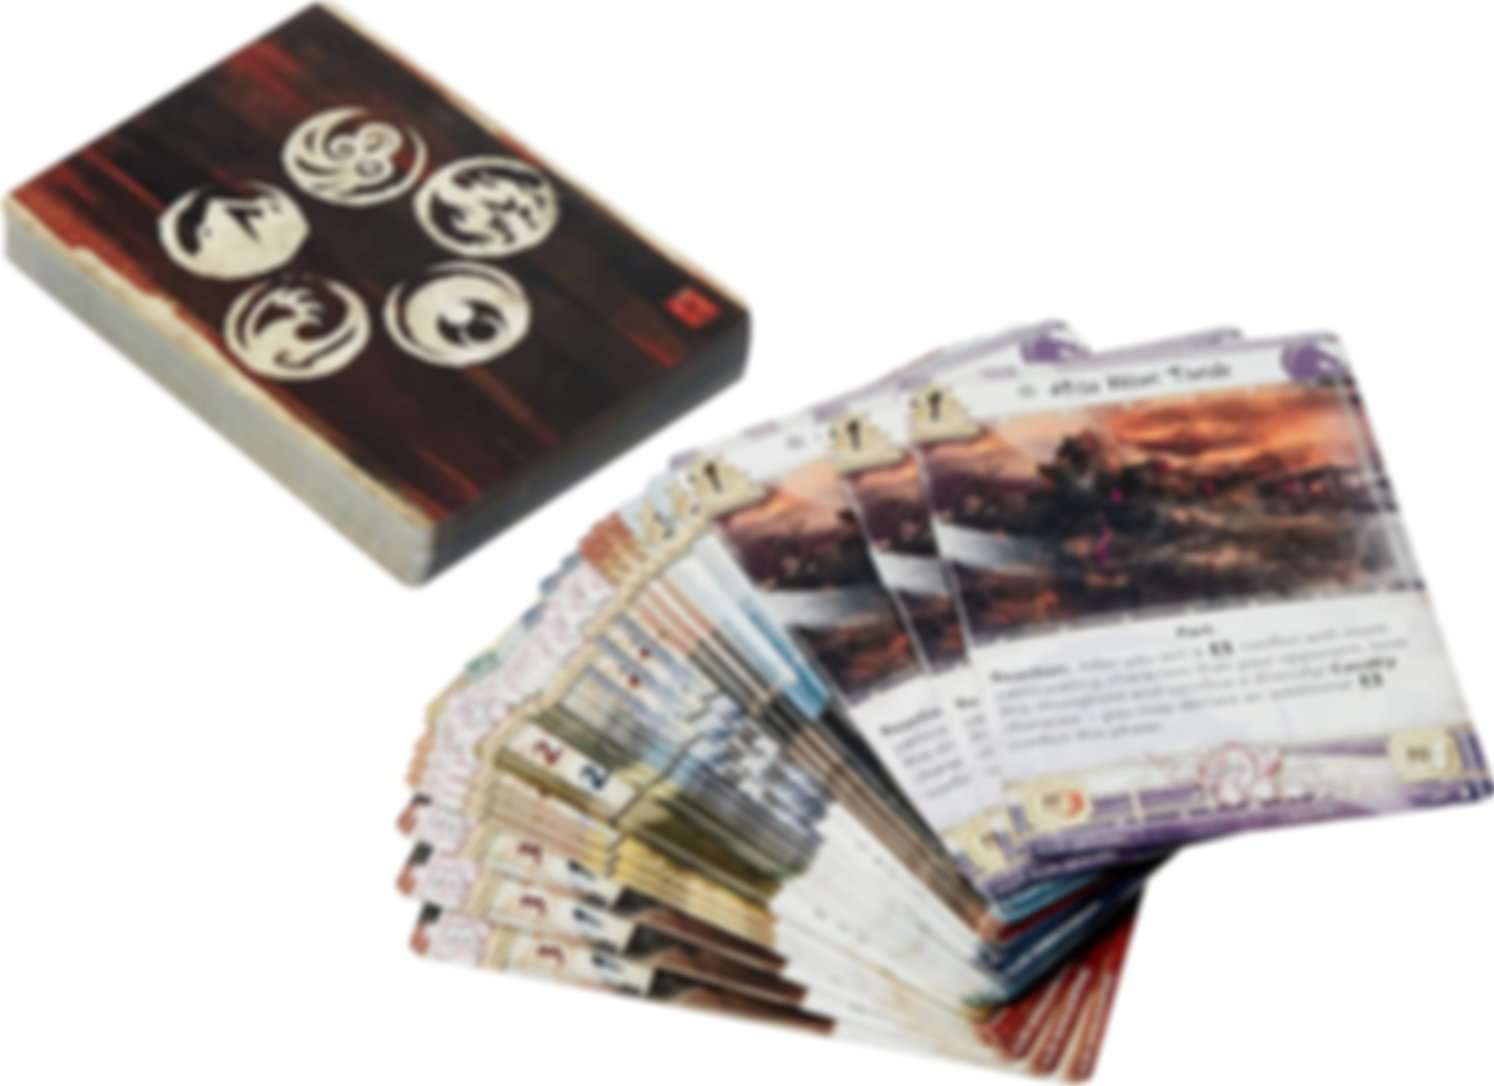 Legend of the Five Rings: The Card Game - Elements Unbound cards